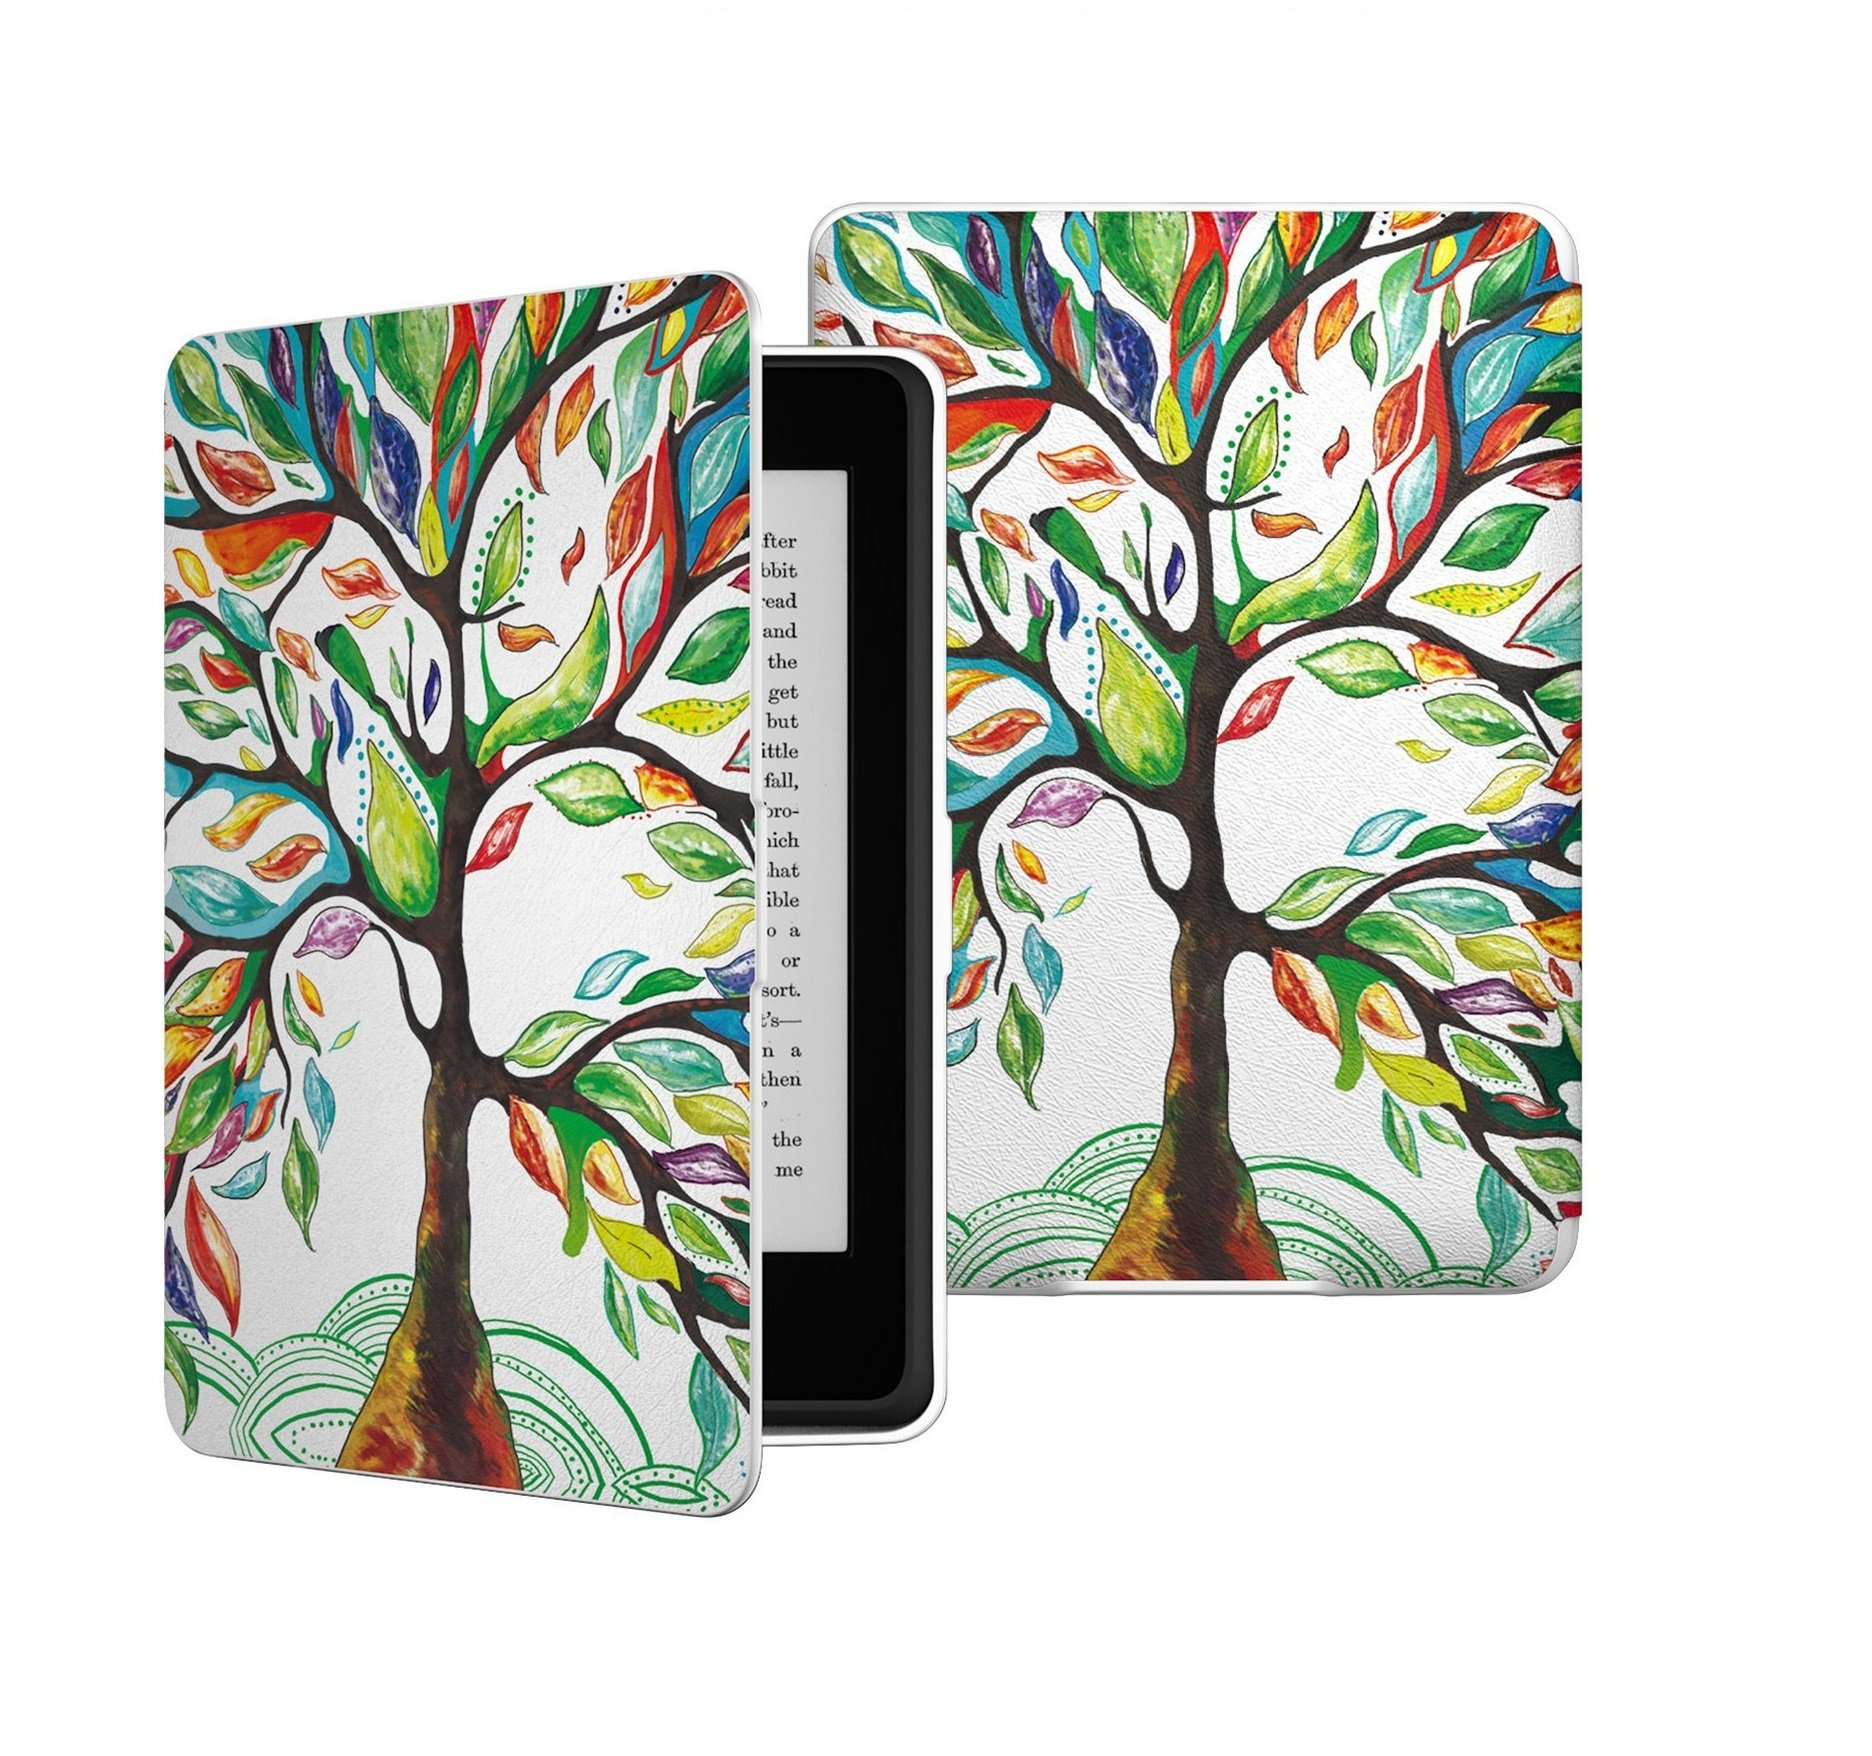 QIUQIU Amazon Kindle Paperwhite Case, Smart Protective Cover with Auto Wake/Sleep Function for Amazon Kindle Paperwhite (2016, 2015, 2013, 2012, all-new 300 PPI Versions) (Tree)